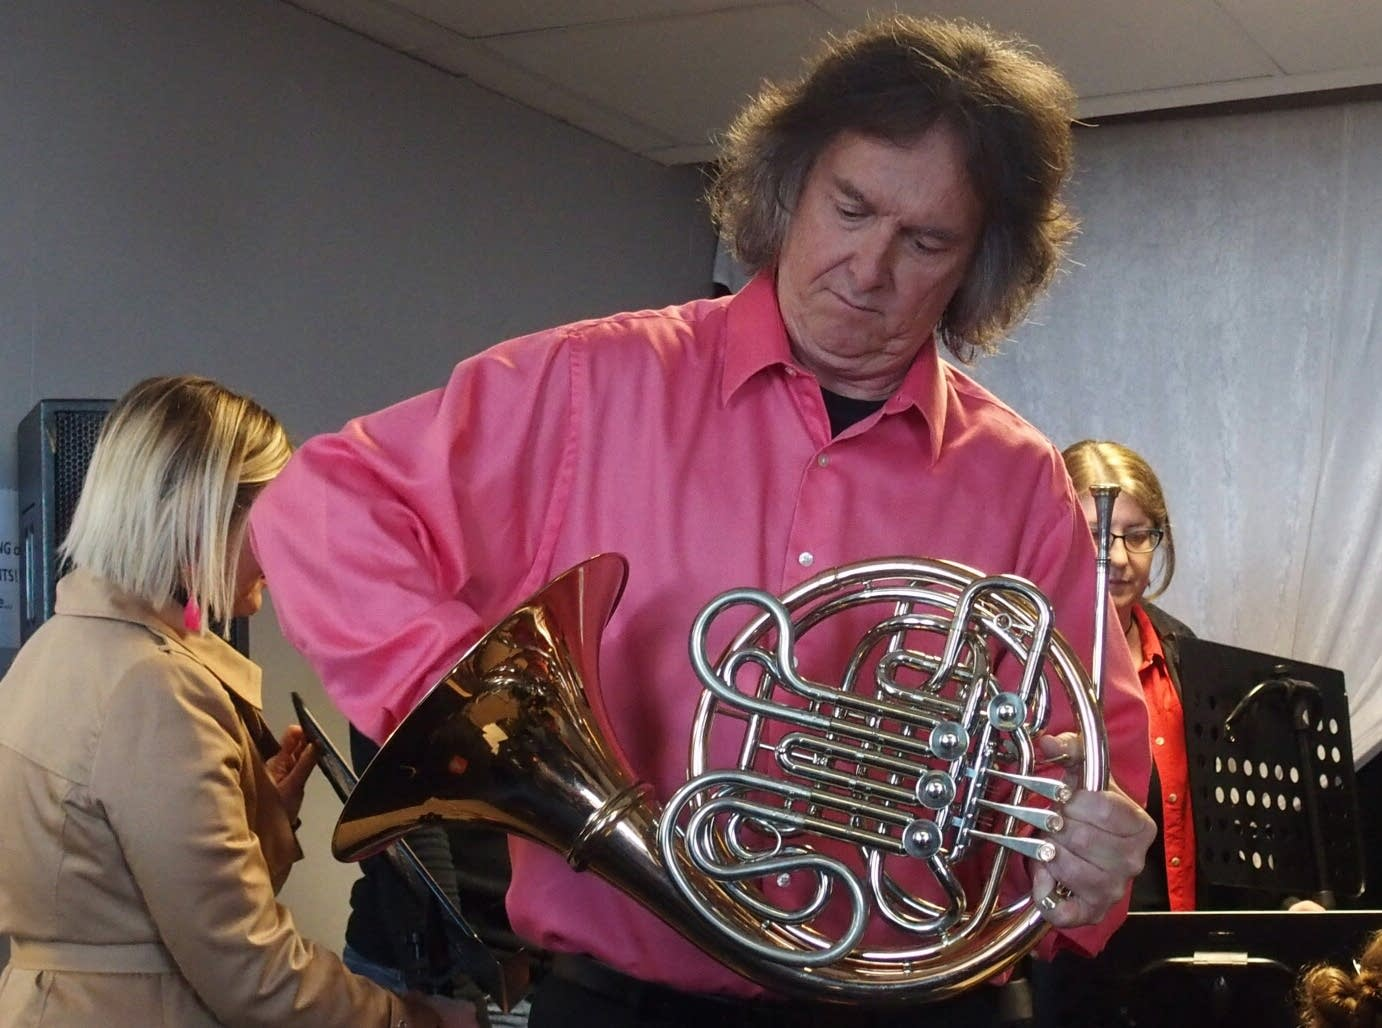 Michael Gast assembles his French Horn